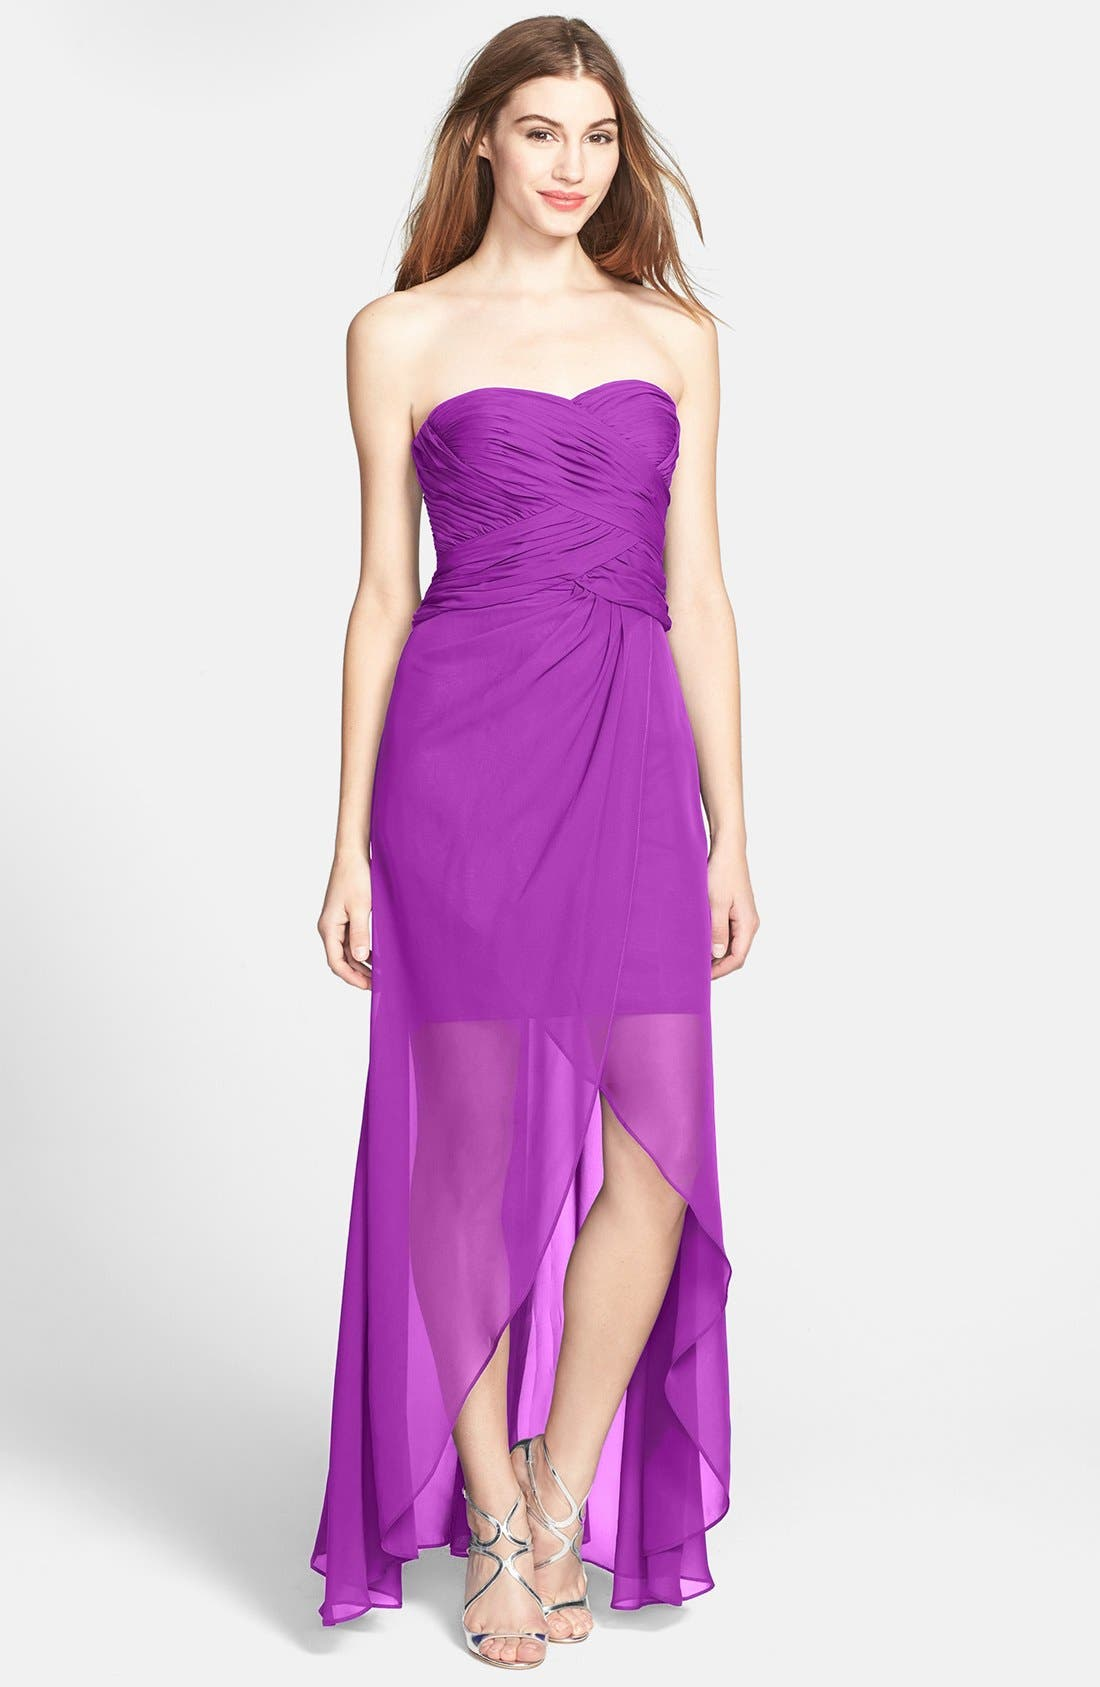 Alternate Image 1 Selected - Hailey by Adrianna Papell Shirred High/Low Chiffon Dress